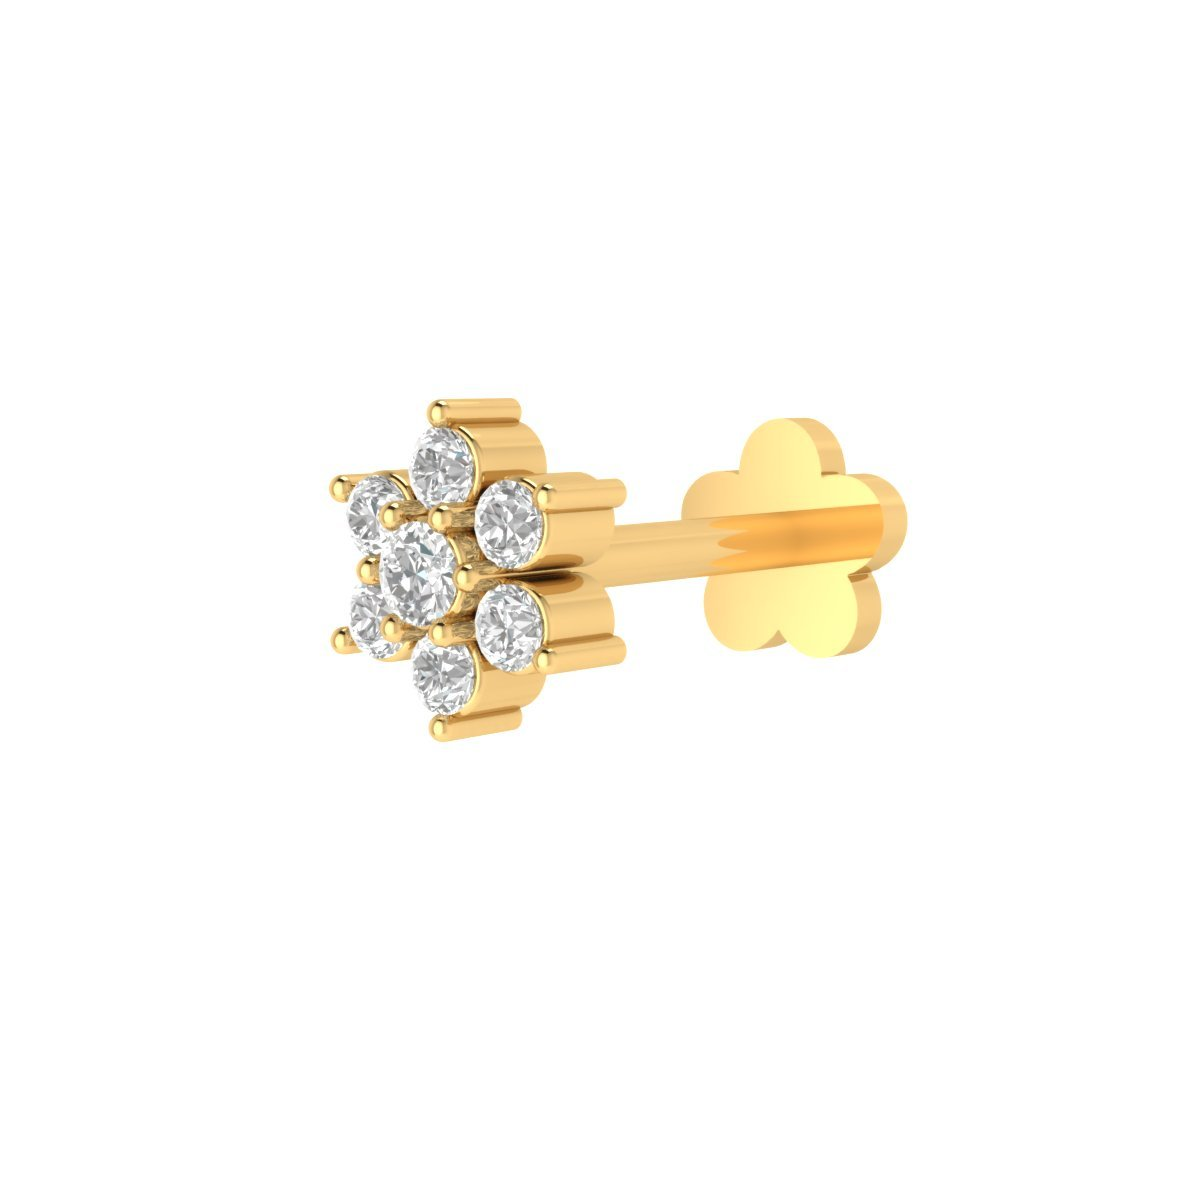 Animas Jewels DGLA Certified 14k Yellow Gold Flower Stud Nose Pin for Women 0.04 Cttw Natural Diamond (G-H Color. SI Clarity) Round Cut 3-Prong Setting. Available in 6 mm & 8 mm Length (6) by Animas Jewels